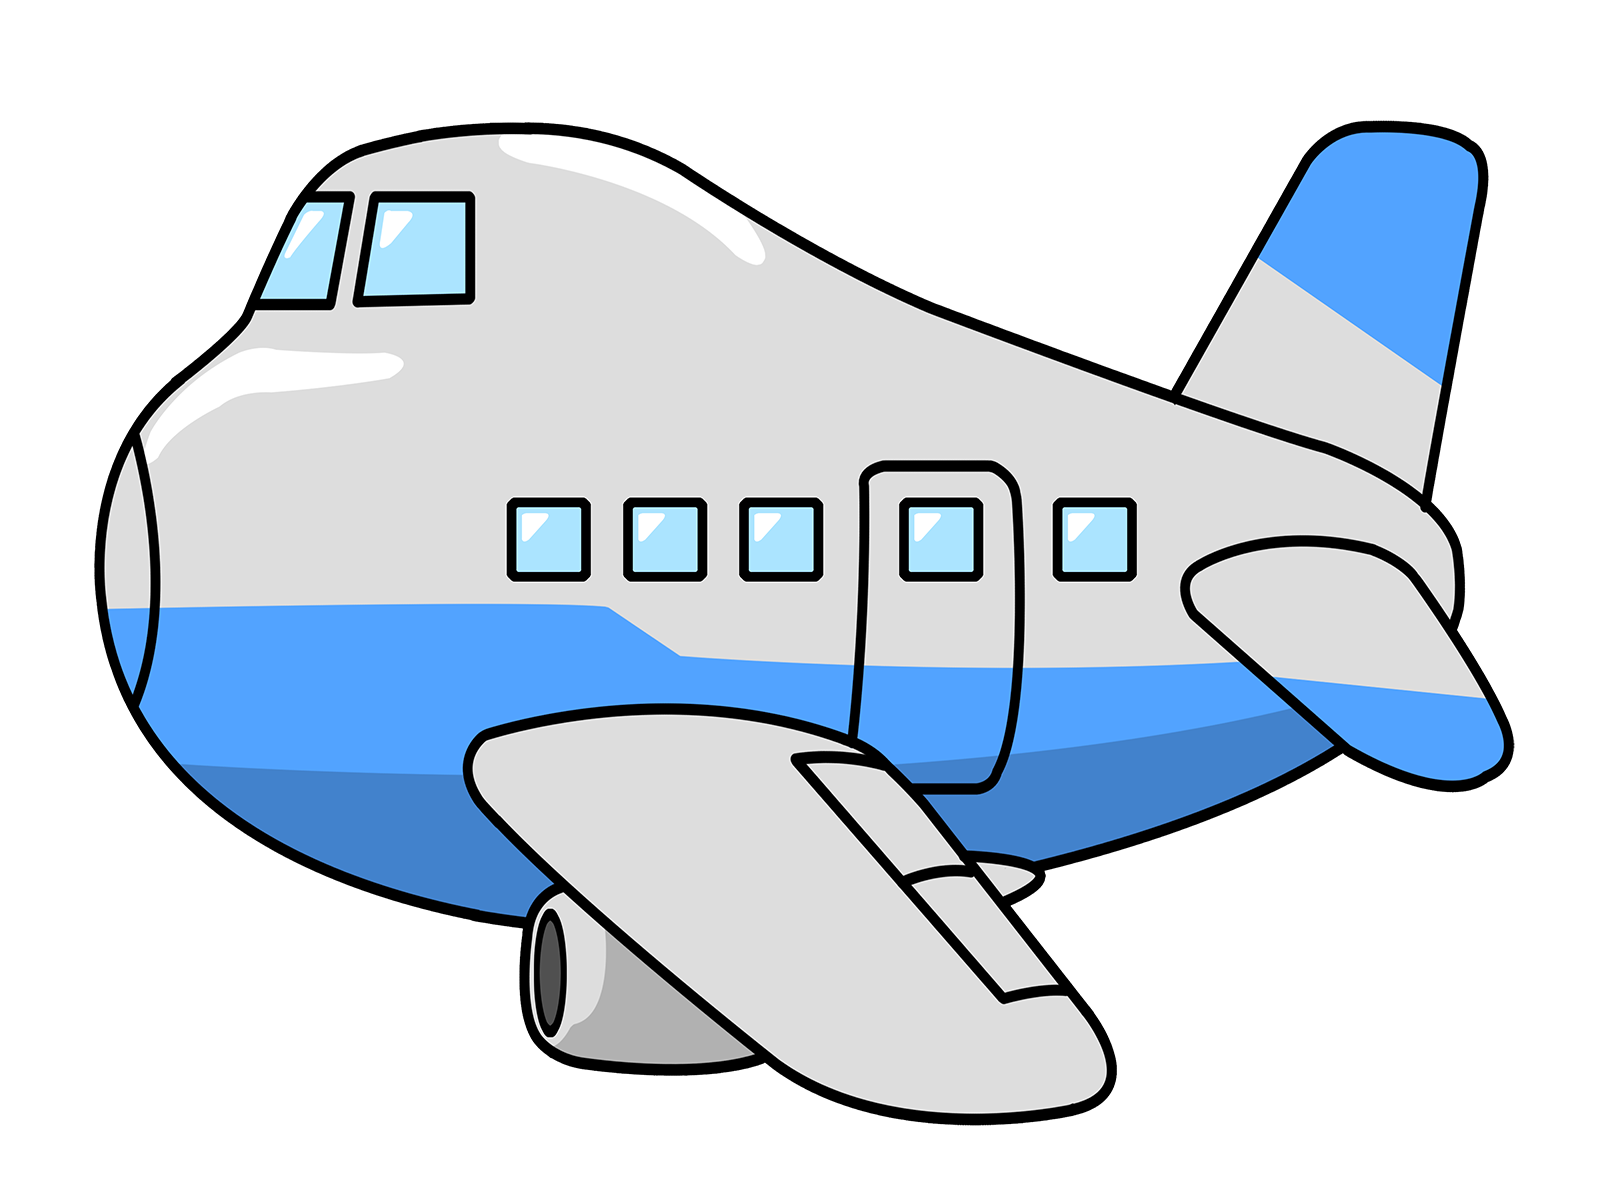 1600x1200 Clipart Plane Many Interesting Cliparts